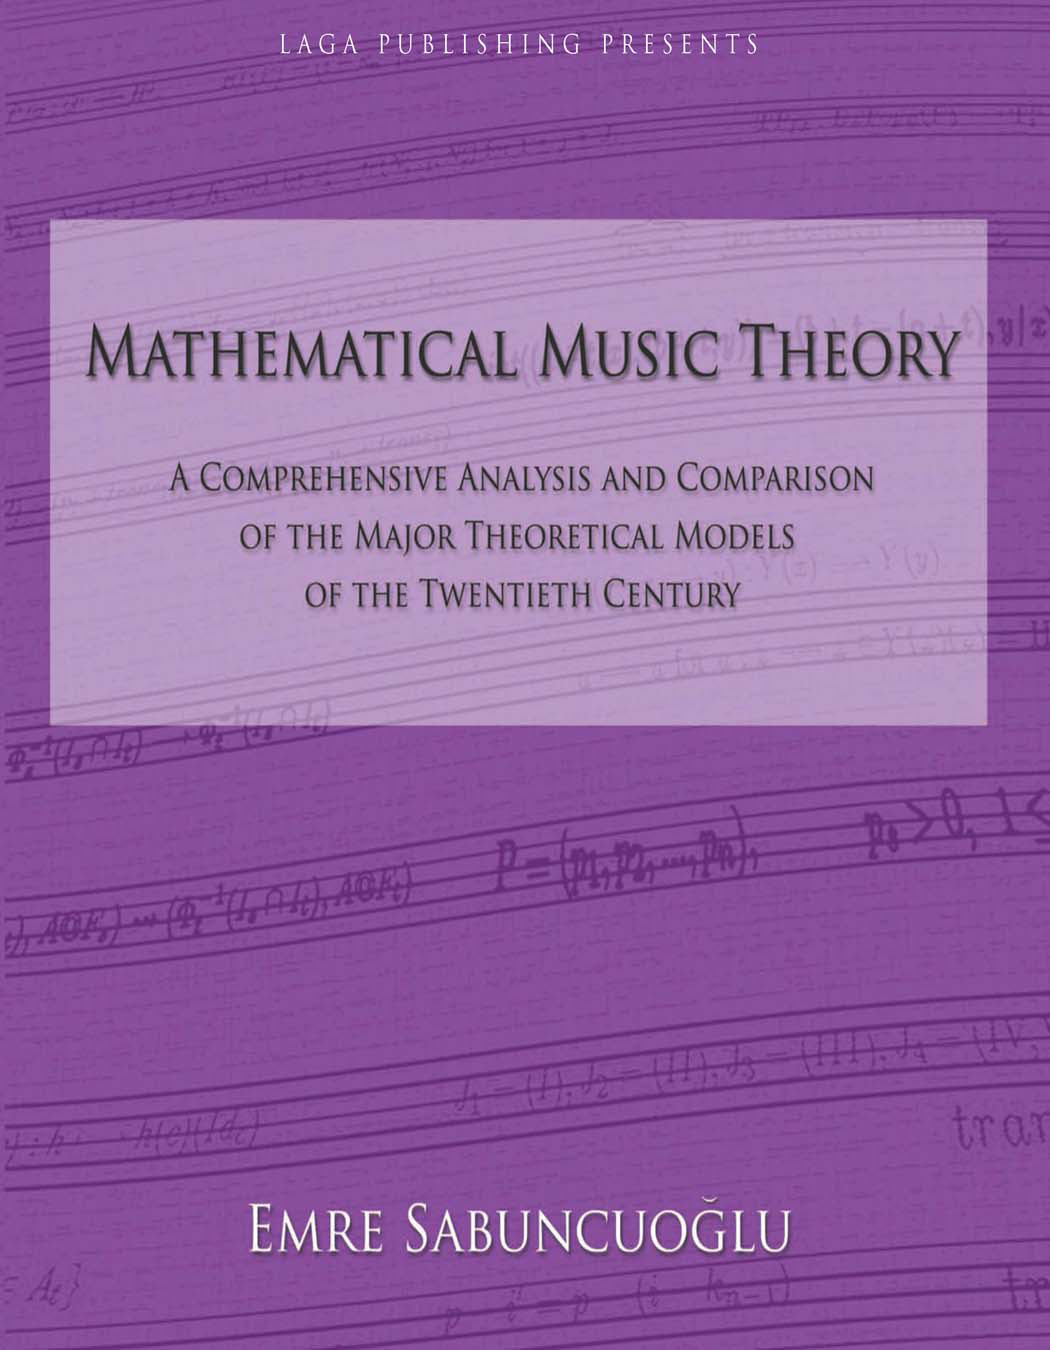 cover-LAGA-Publishing-ES-math-music